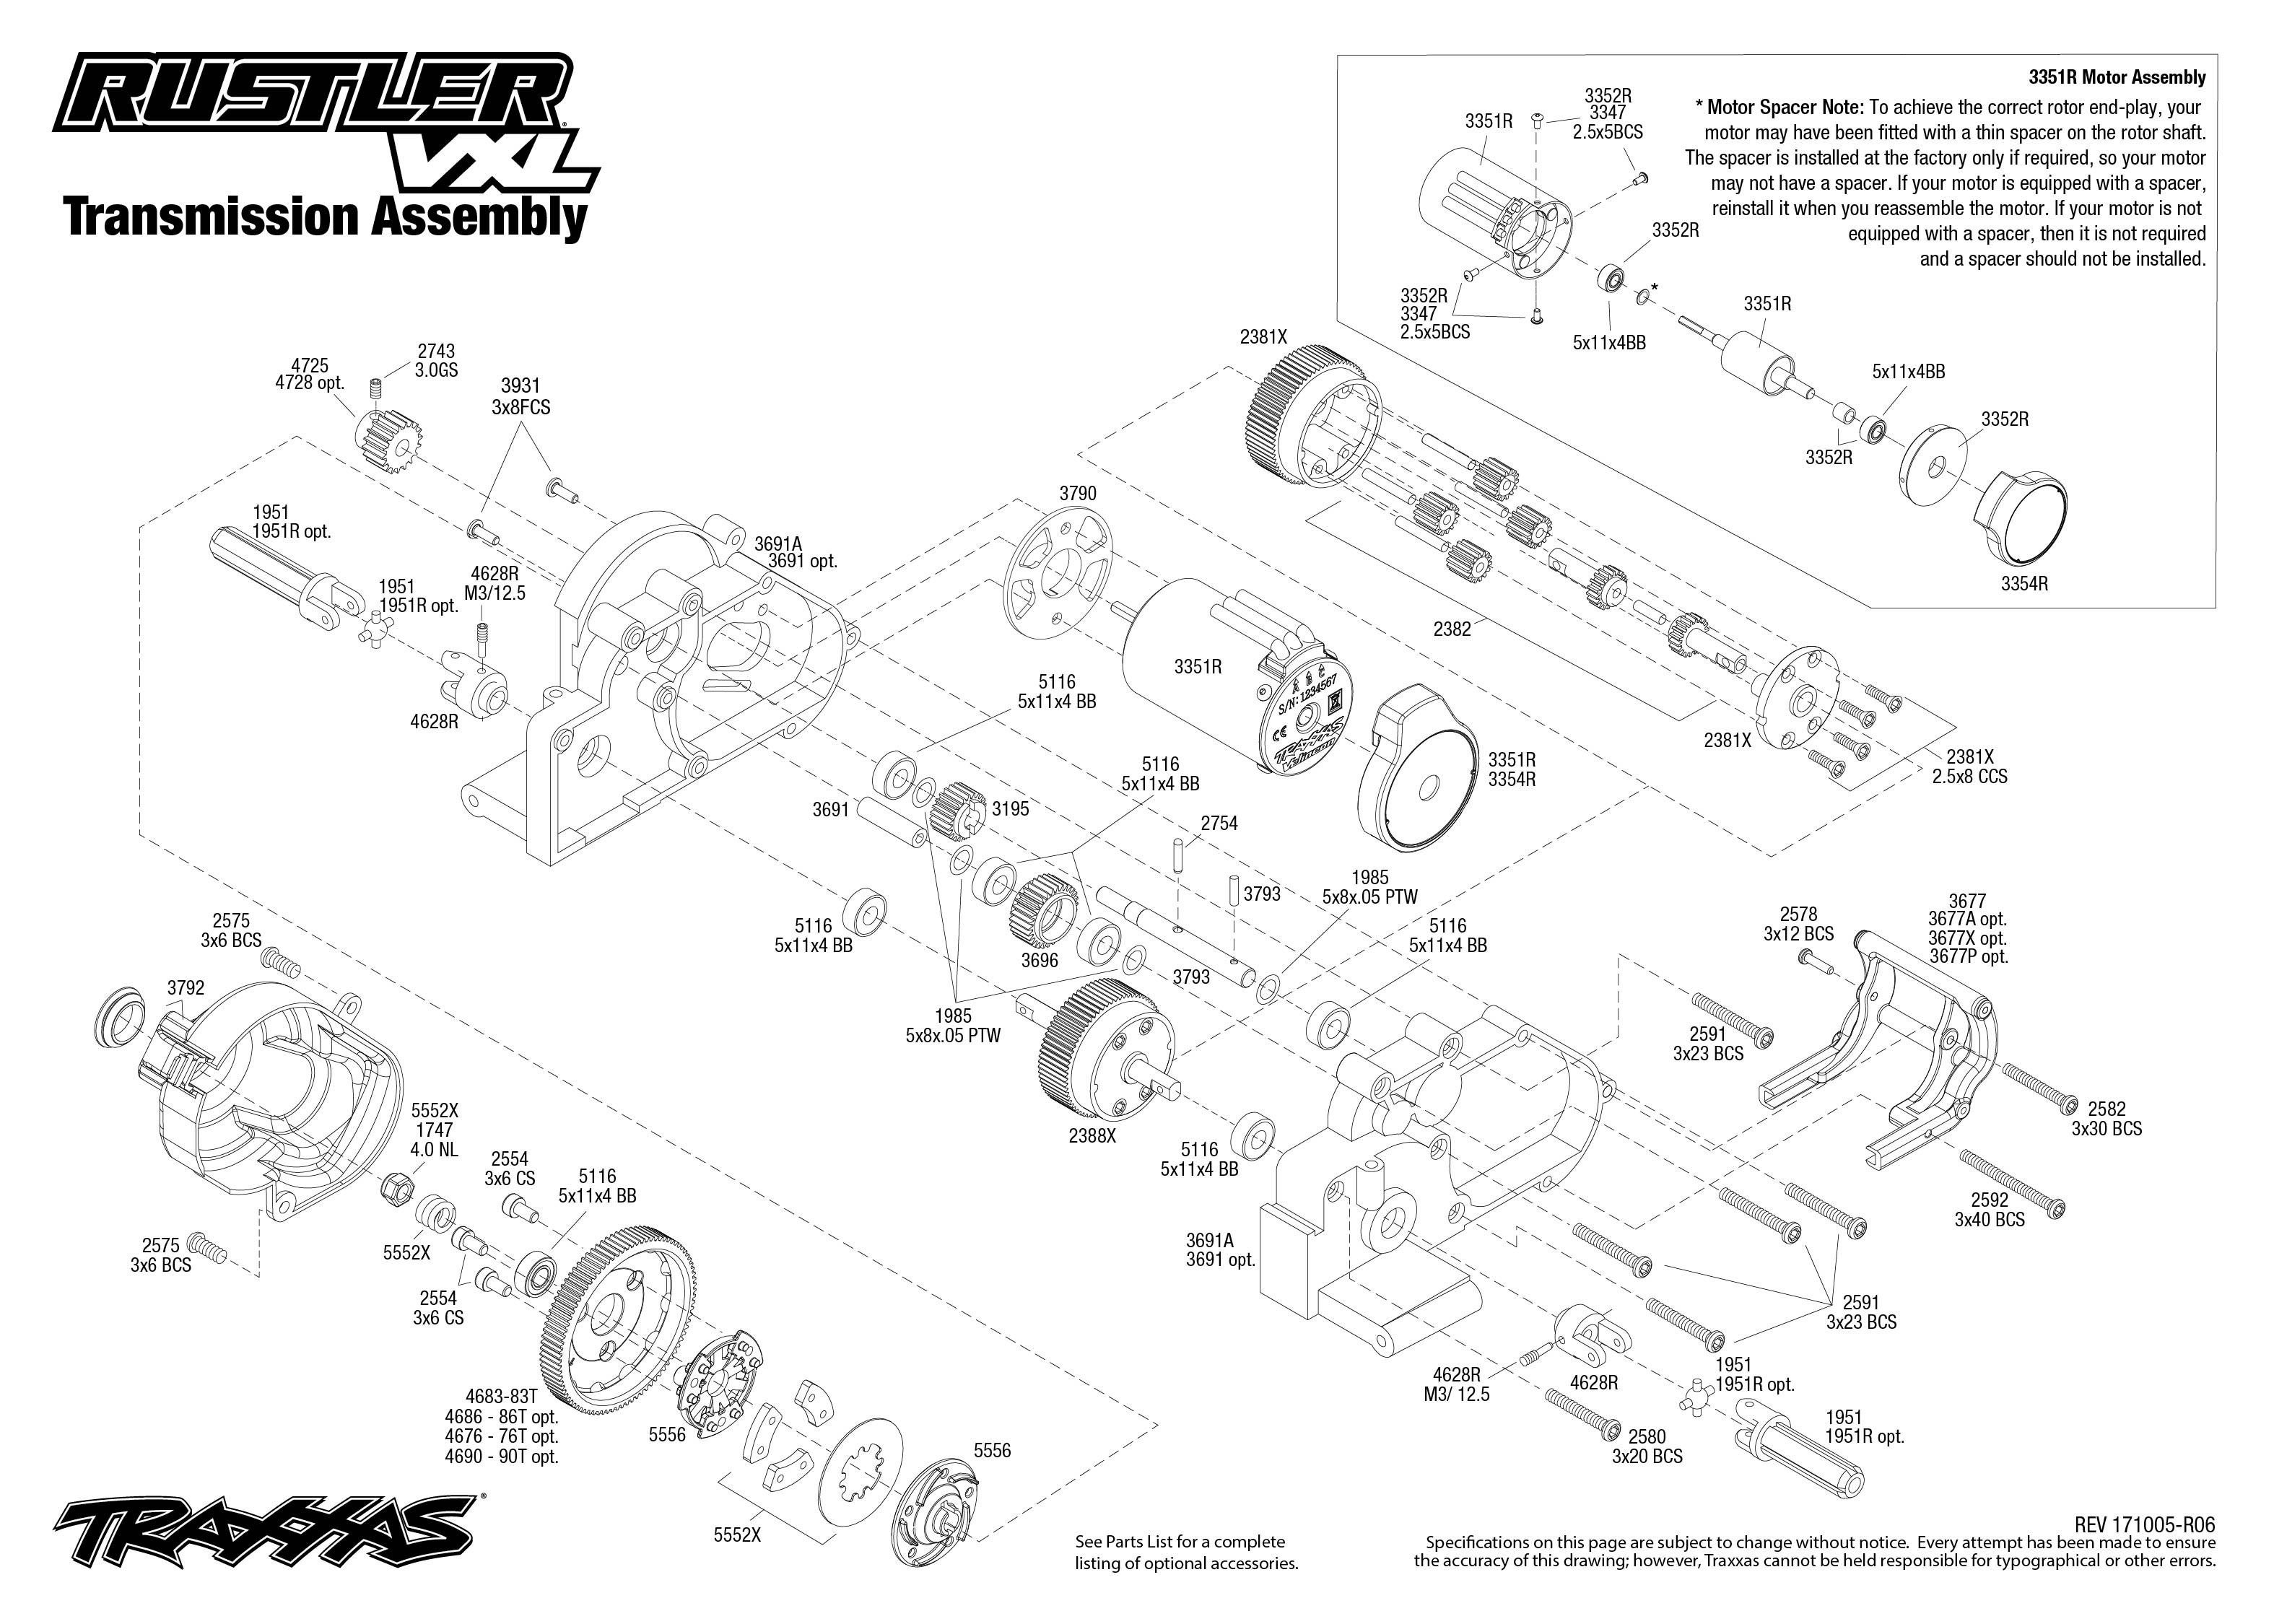 Rustler Vxl 3 Transmission Assembly Exploded View